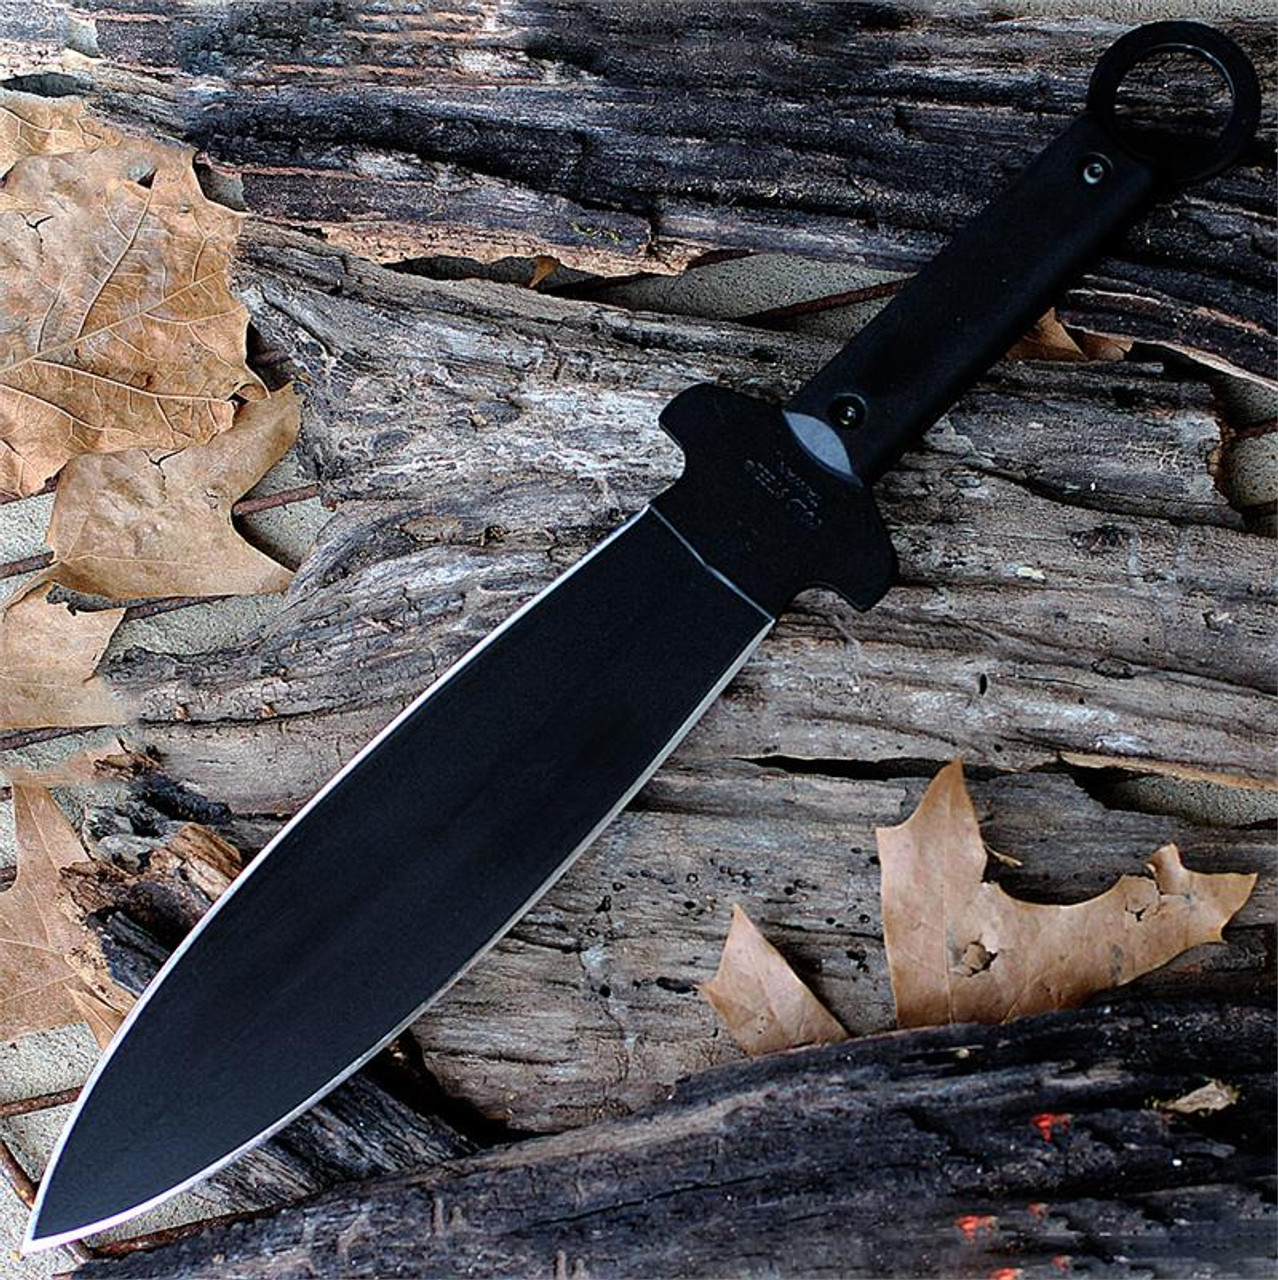 "Cold Steel 80PSSKXL Shanghai Warrior, 9.75"" SK-5 Carbon Steel Plain Blade, Poly Handle, Secure-Ex Sheath"